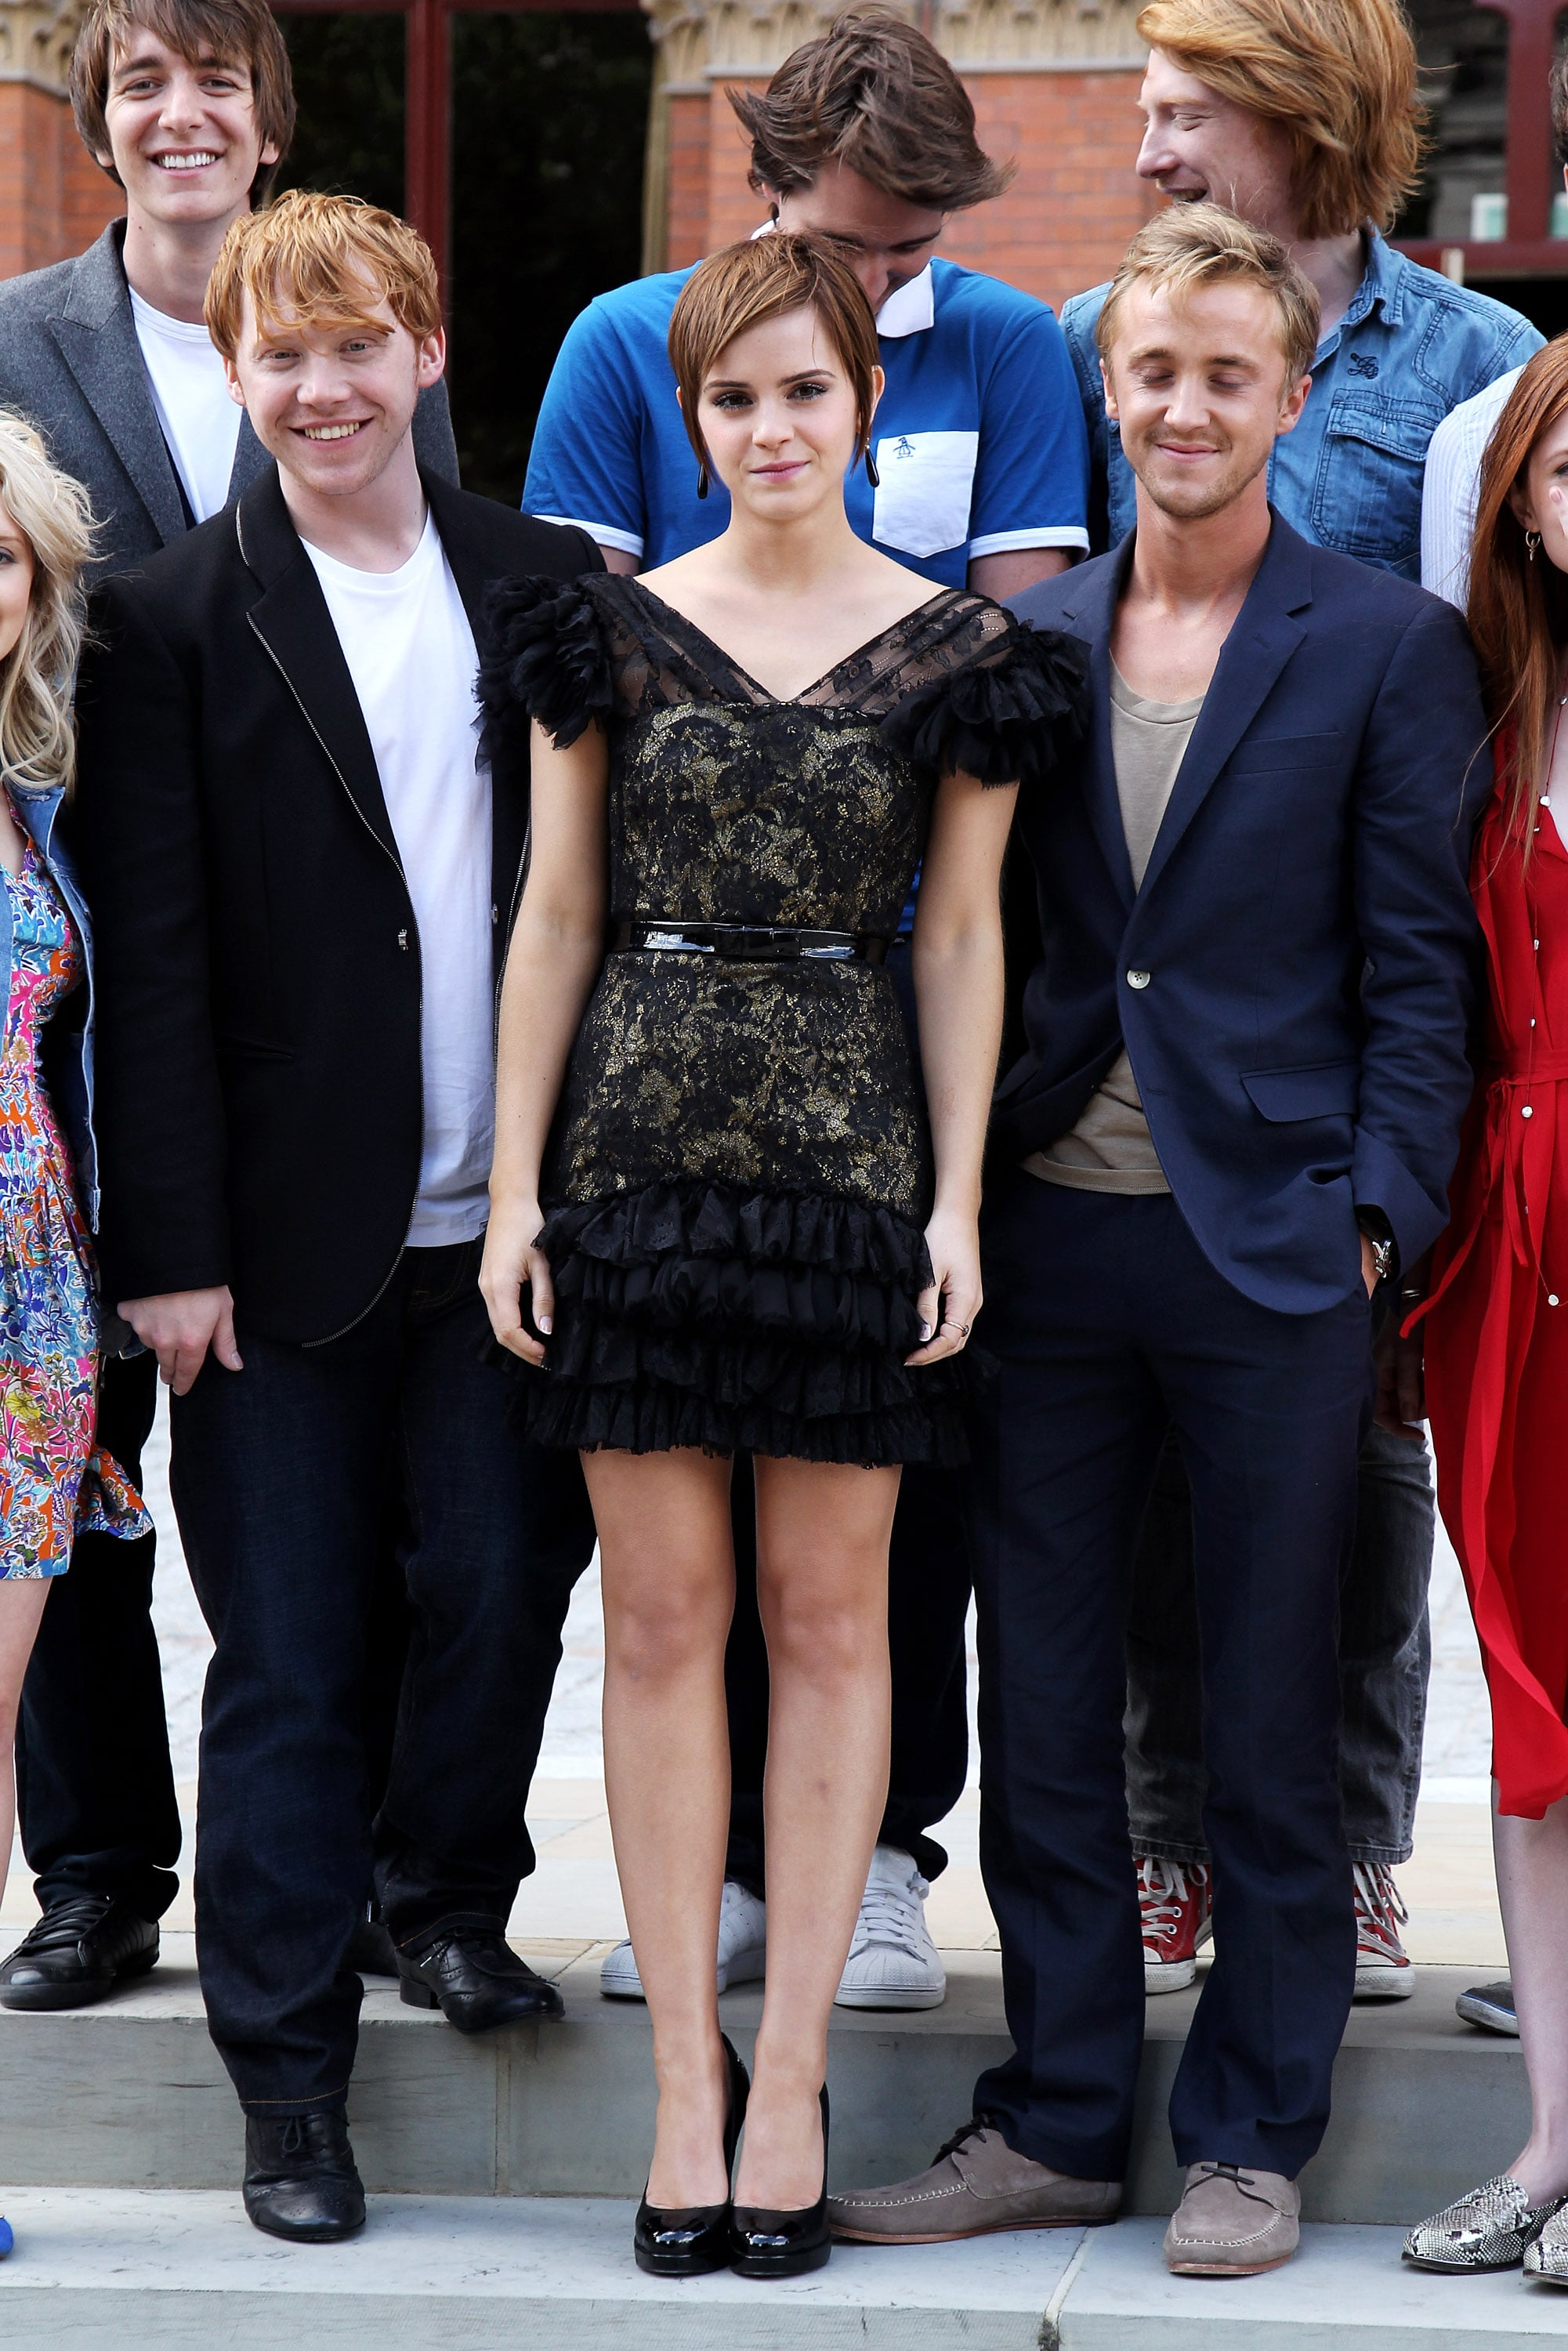 It was all smiles for Emma, Rupert, and Tom.